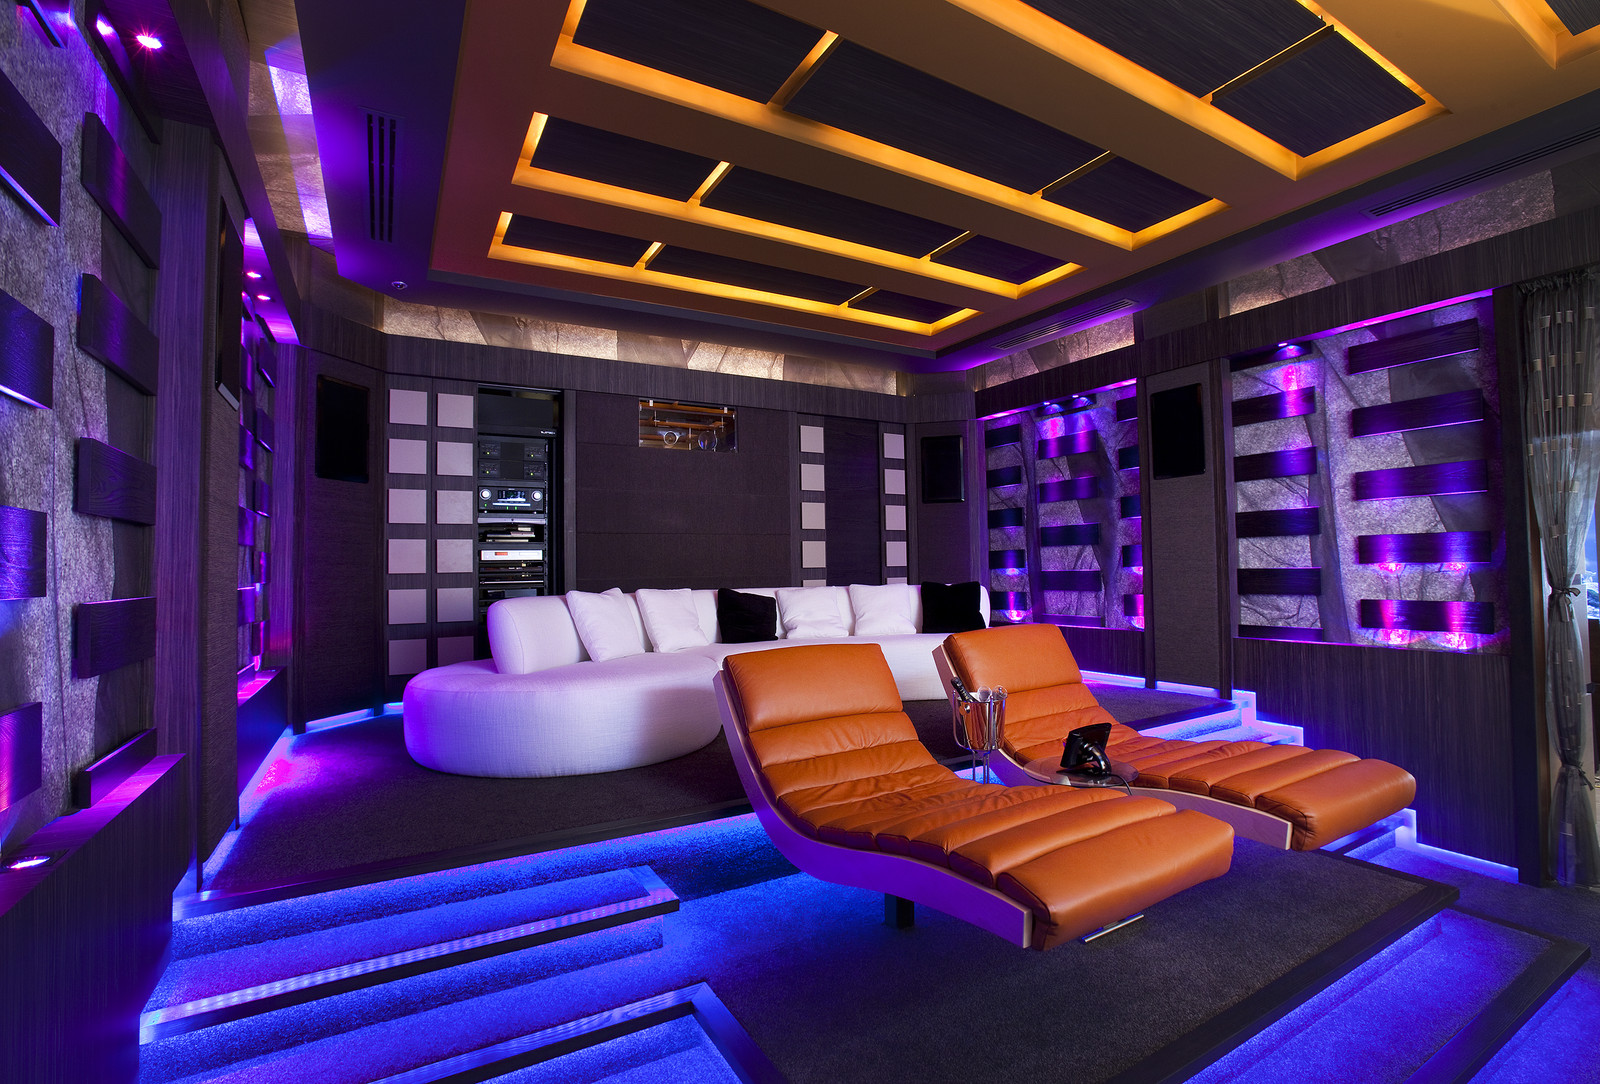 Surrounds Perth Nedlands Technology And Home Automation Smart Wiring Cinema Design With Projection Large Format Screen Furniture